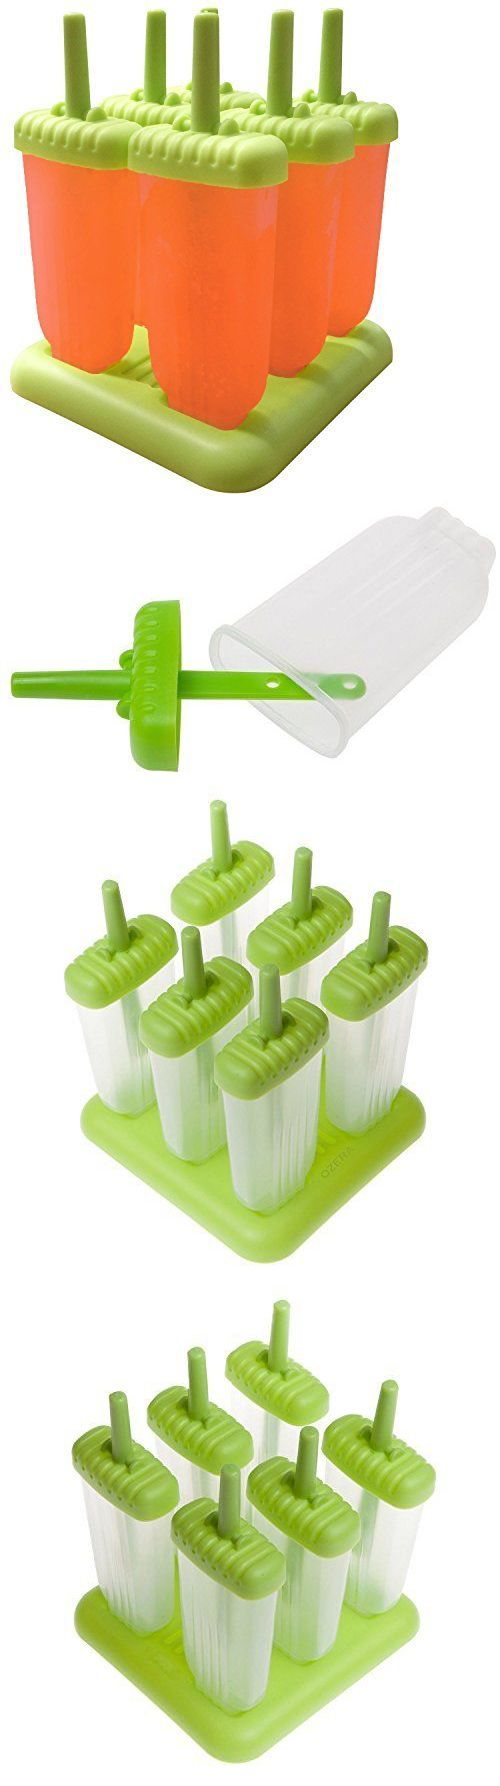 Ice Pop Molds 178056: Popsicle Molds Popsicle Maker Ice Pop Molds Set Drip Guard Protection And Quick -> BUY IT NOW ONLY: $105.59 on eBay!